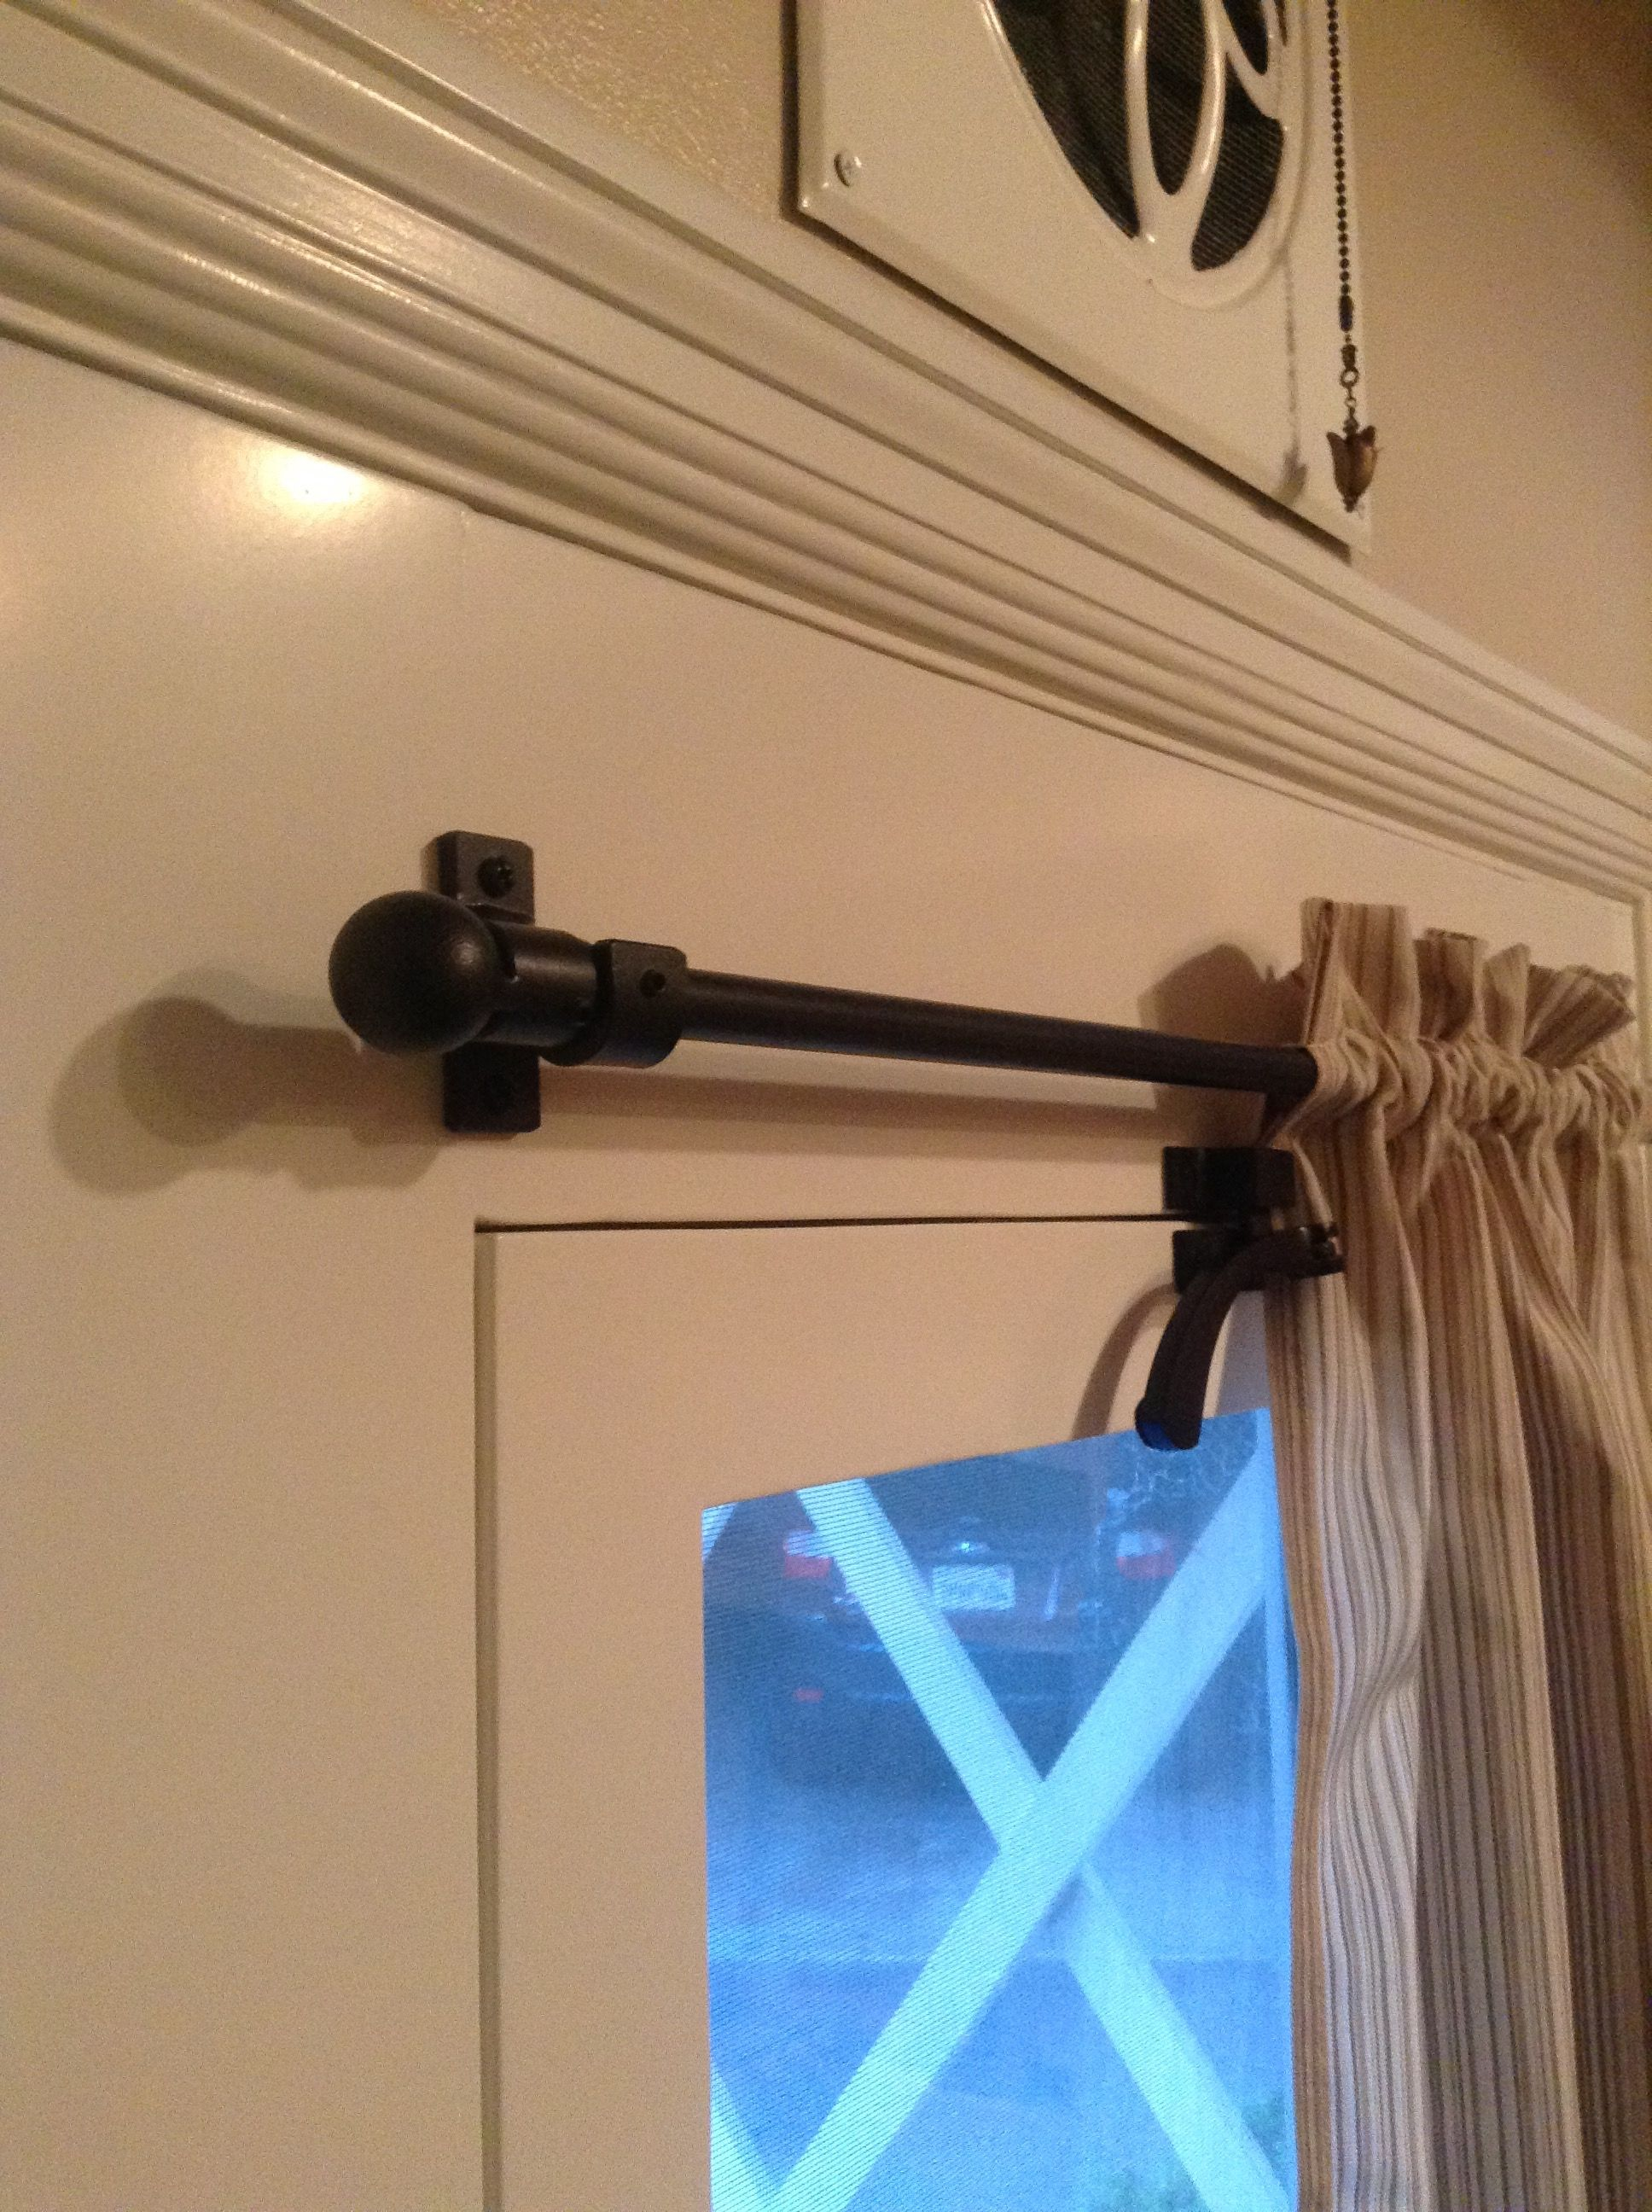 Small Iron Rod Door Curtain Rod Cafe Iron Rod With Ball Finials Wrought Iron Drapery Rod By Https Www Etsy Com Shop Ad Curtain Rods Drapery Rods Curtains